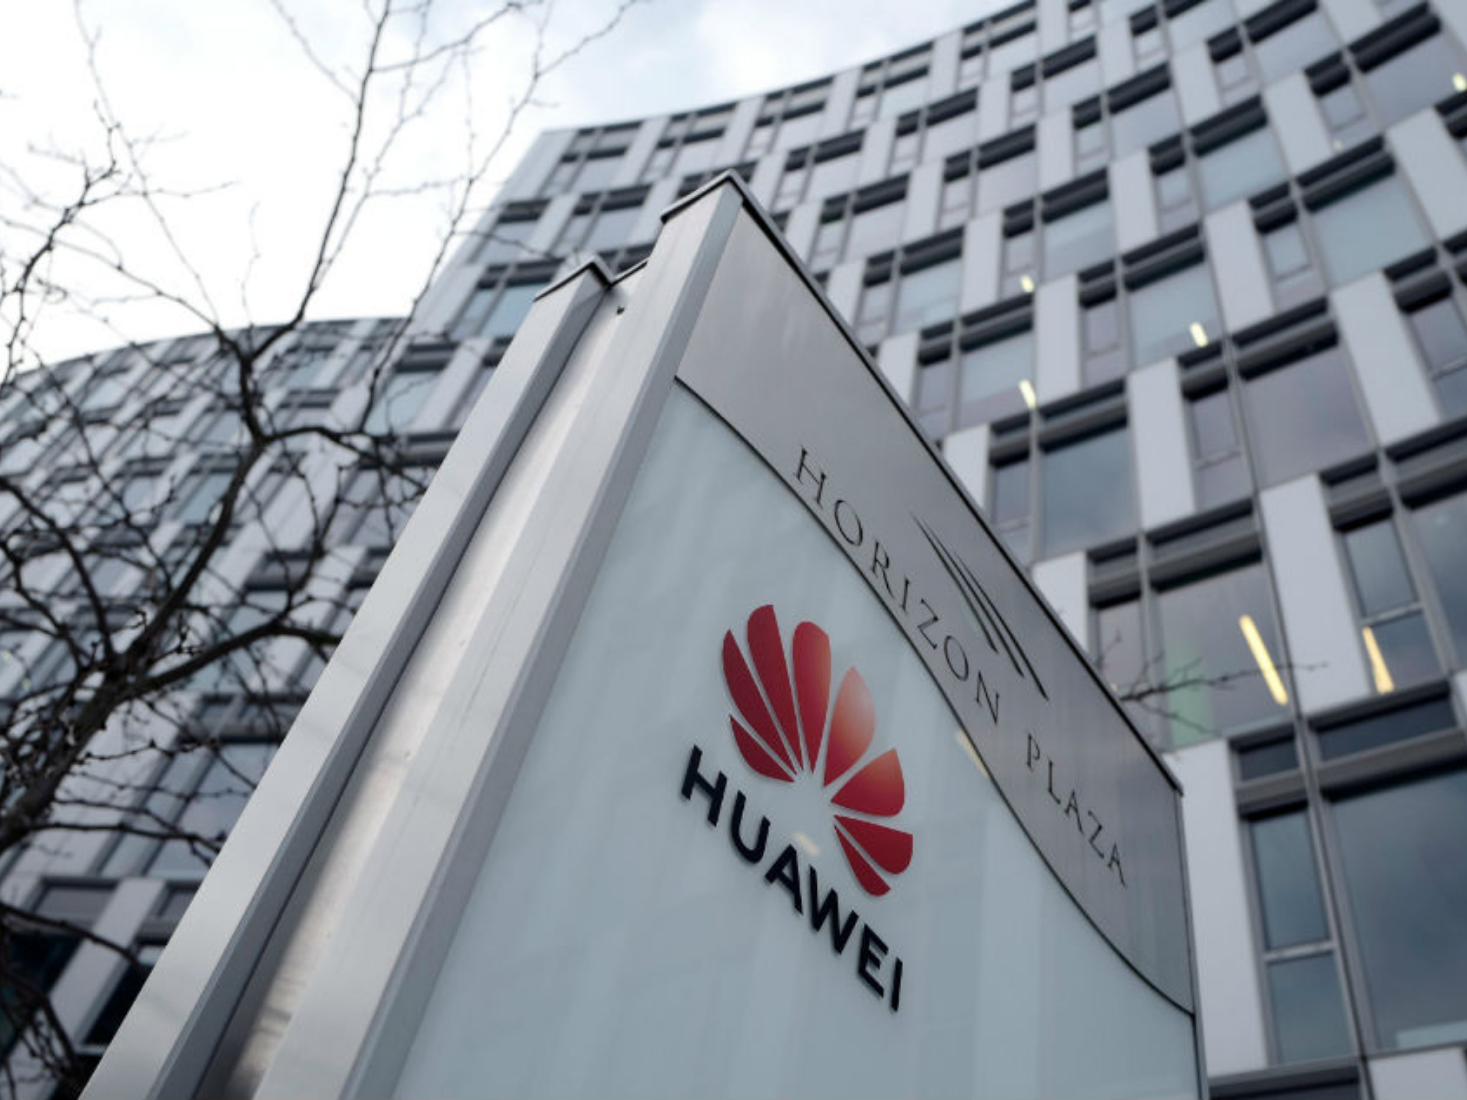 Russian operator launches trial 5G network aided by Huawei